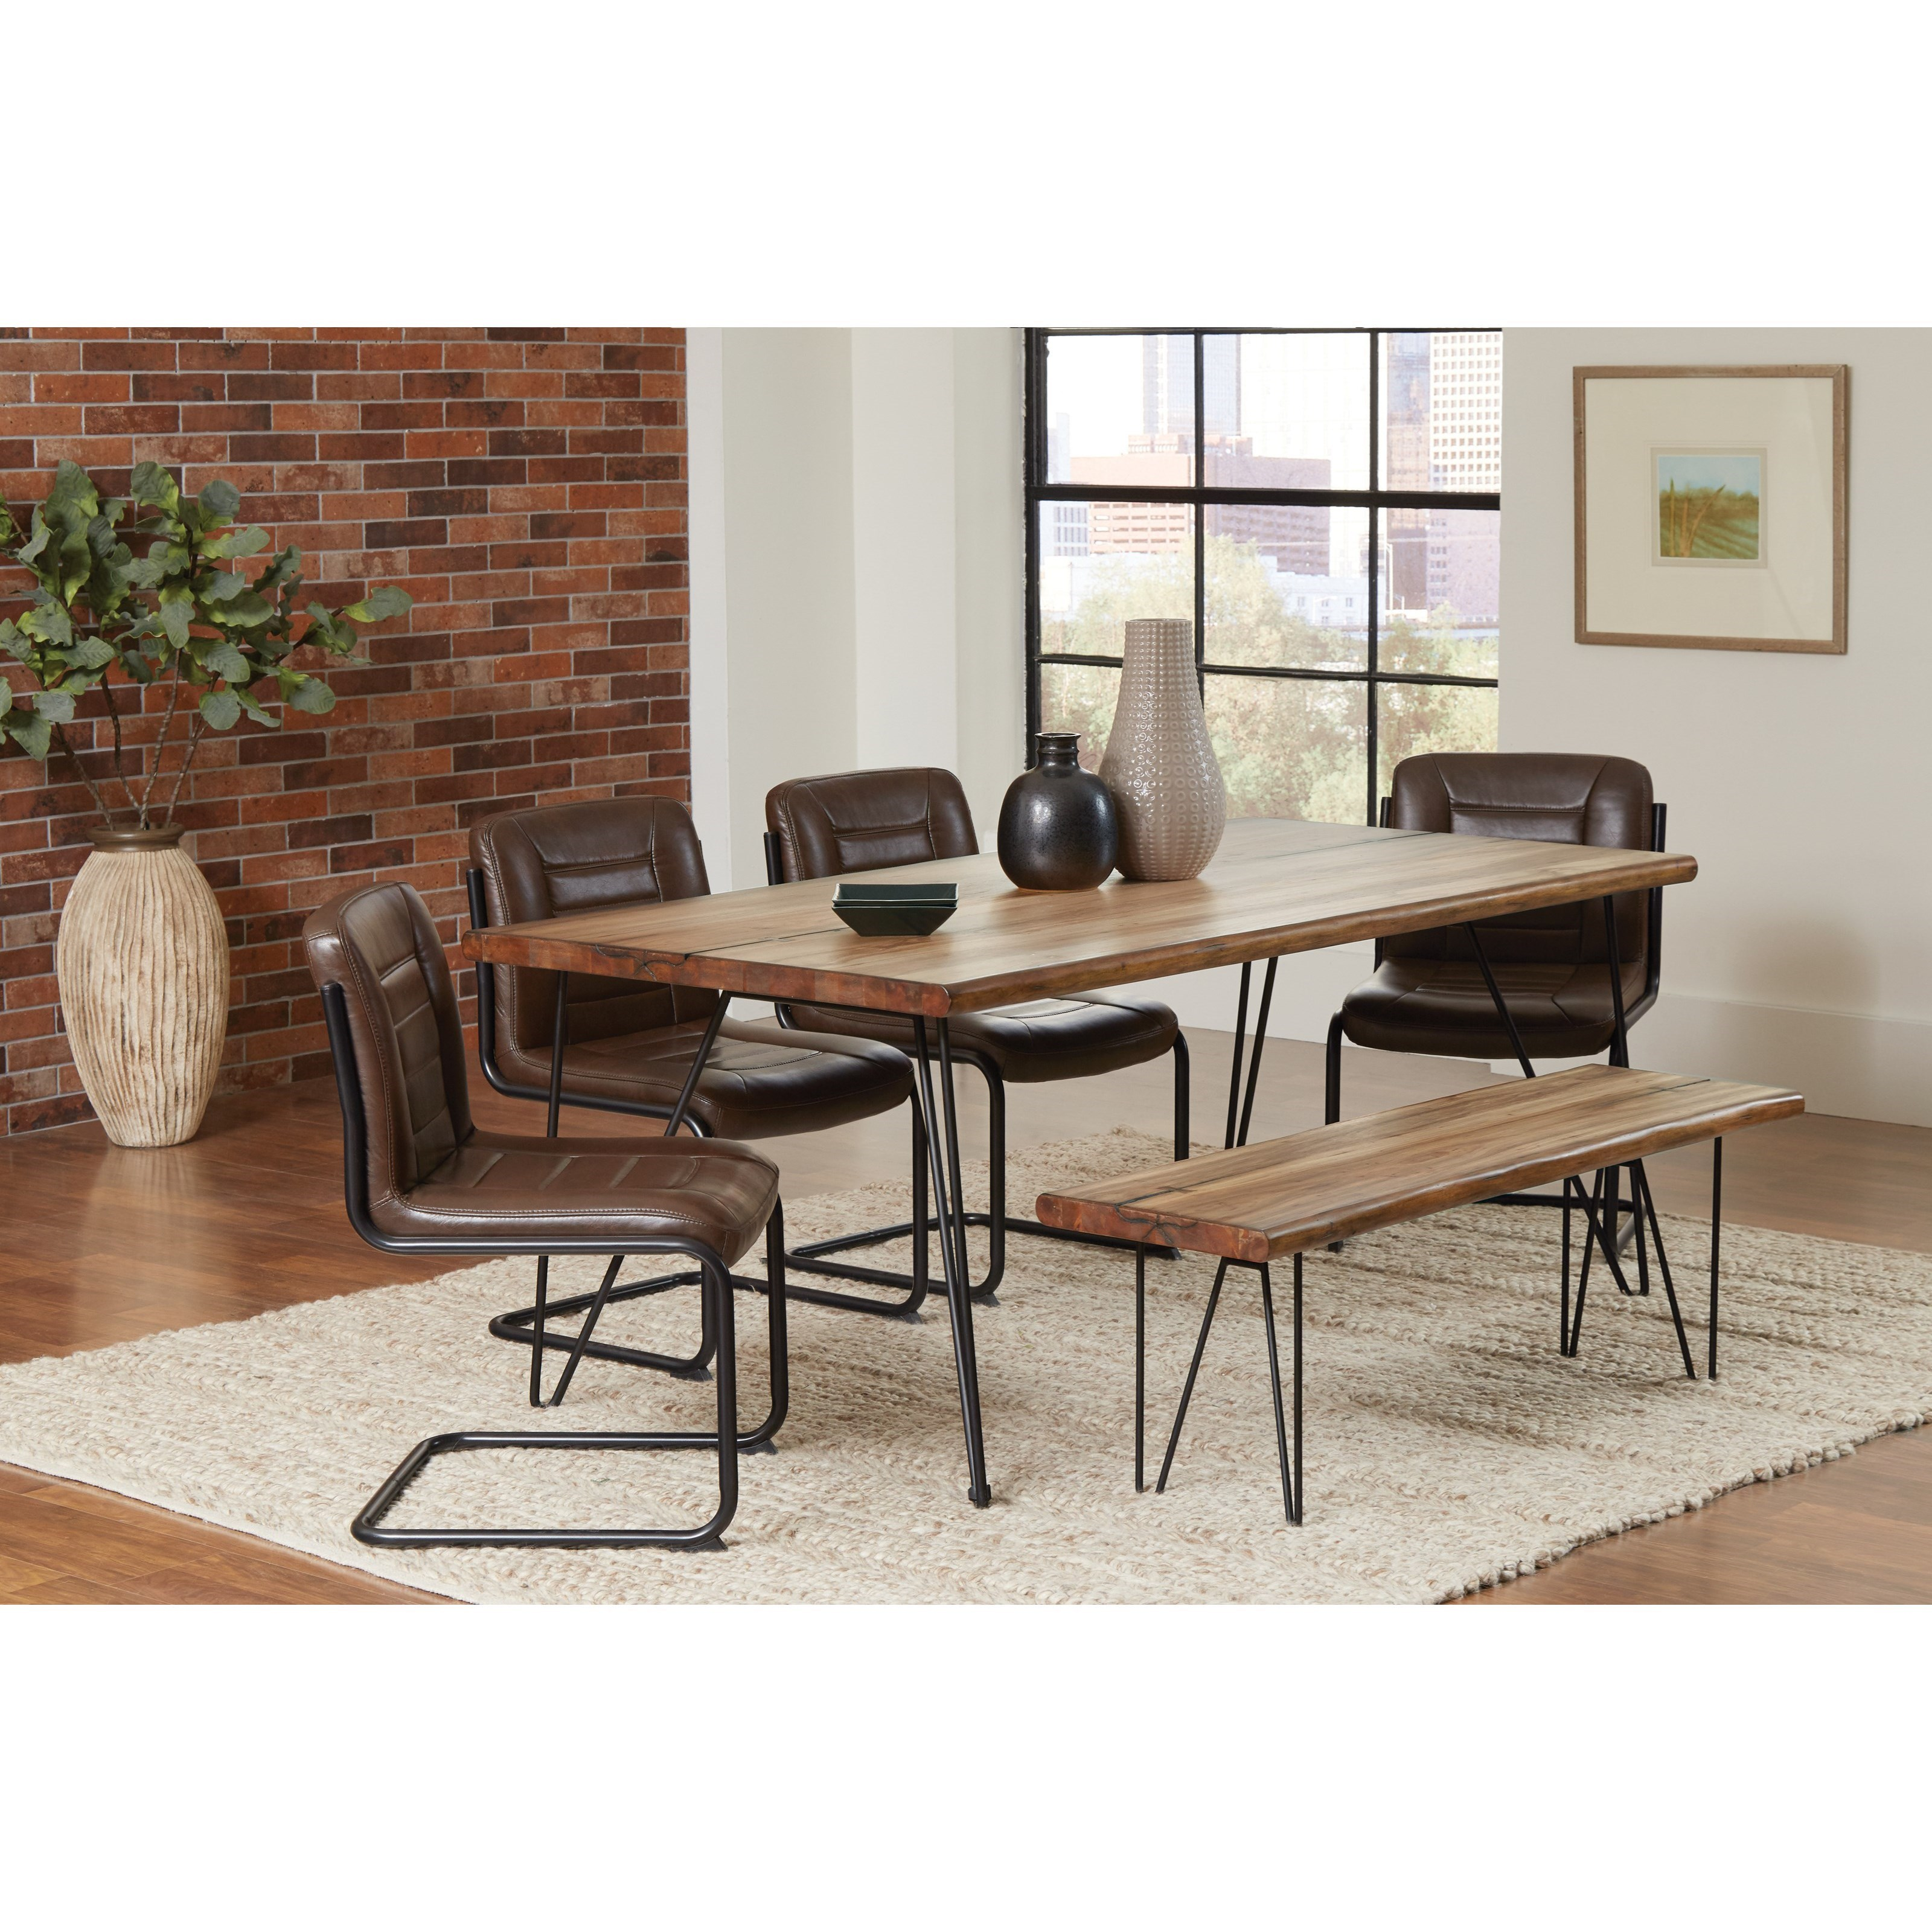 Coaster Chambler Vintage Dining Set With Bench   Dunk U0026 Bright Furniture    Table U0026 Chair Set With Bench